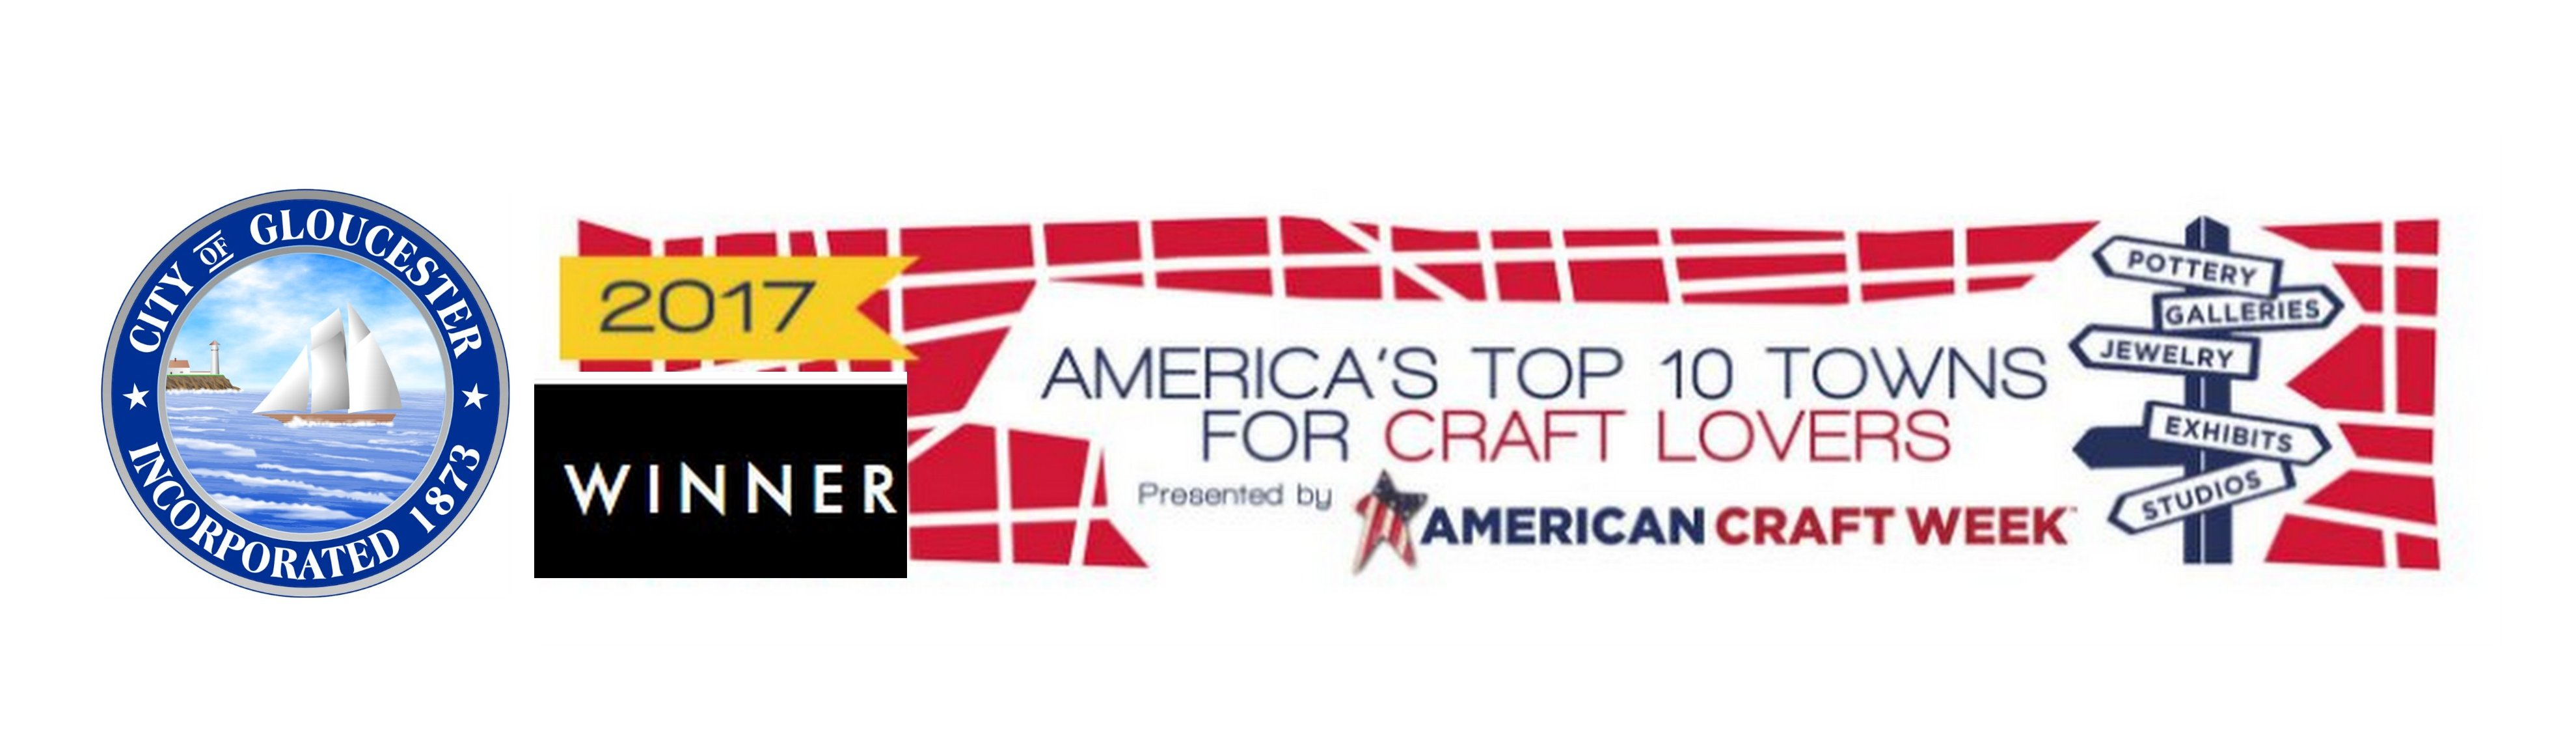 gloucester is top 10 town in USA for craft lovers winner 2017